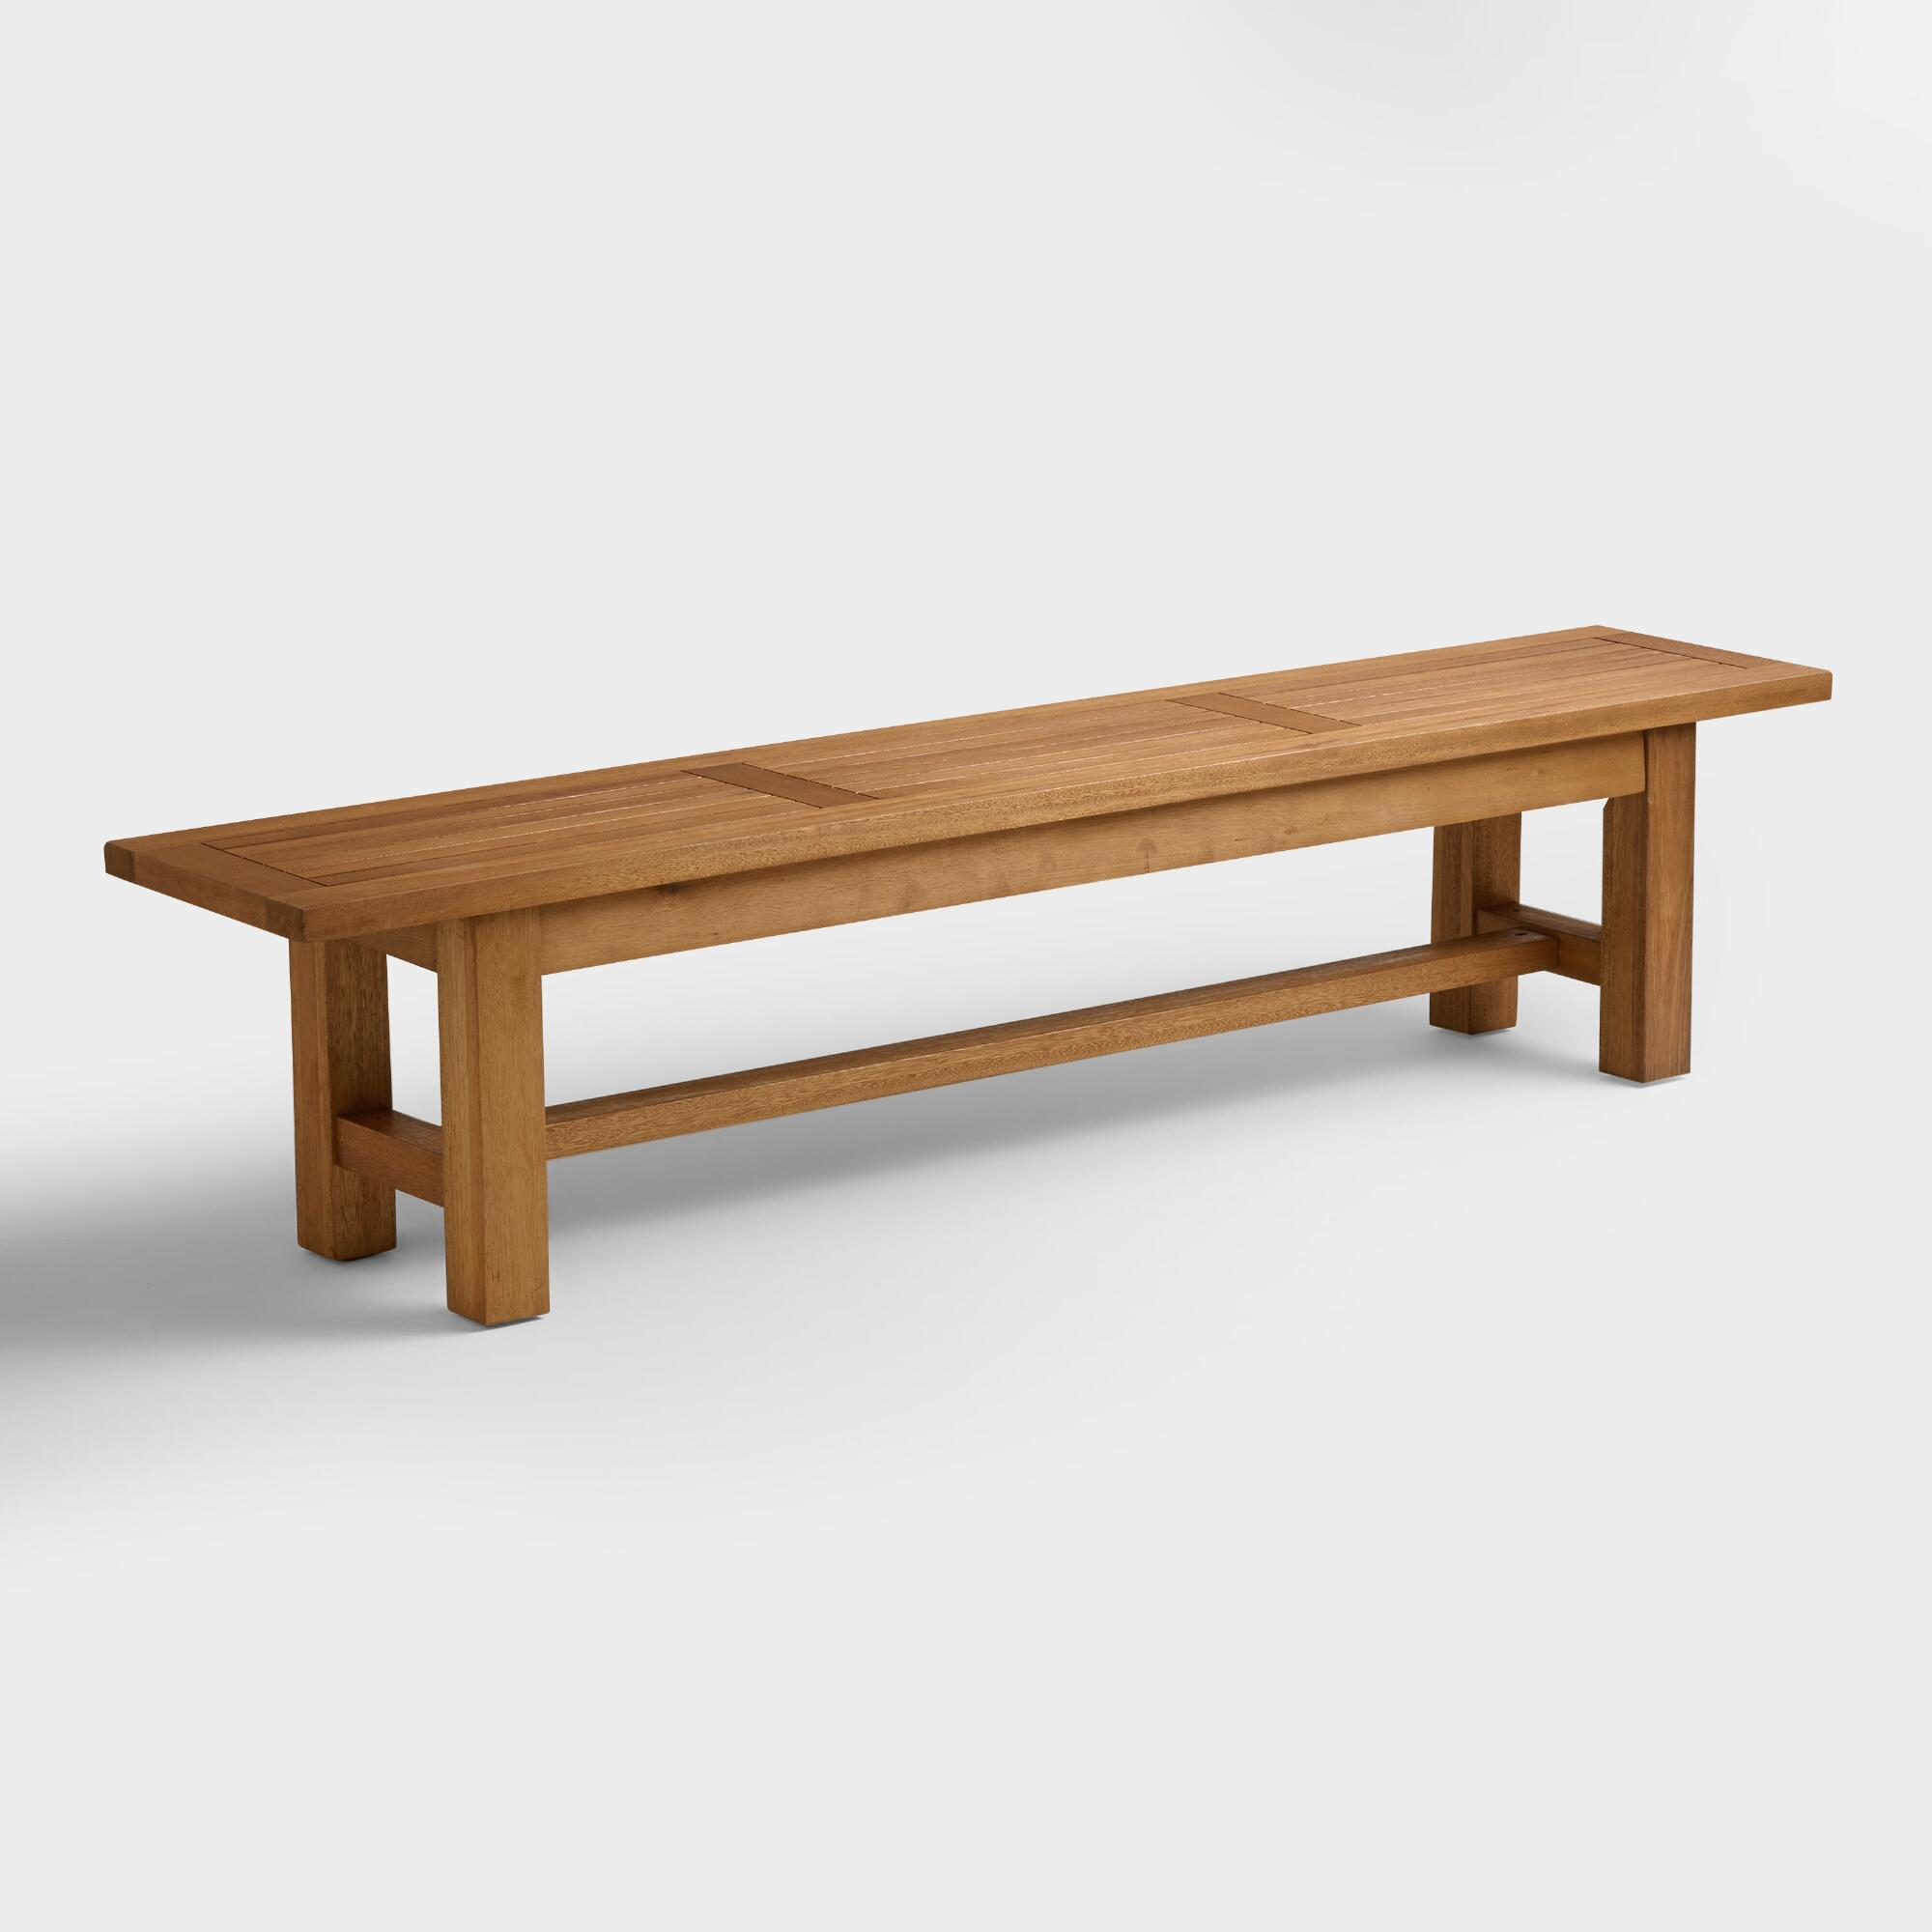 Dining Benches: Wood Praiano Outdoor Dining Bench